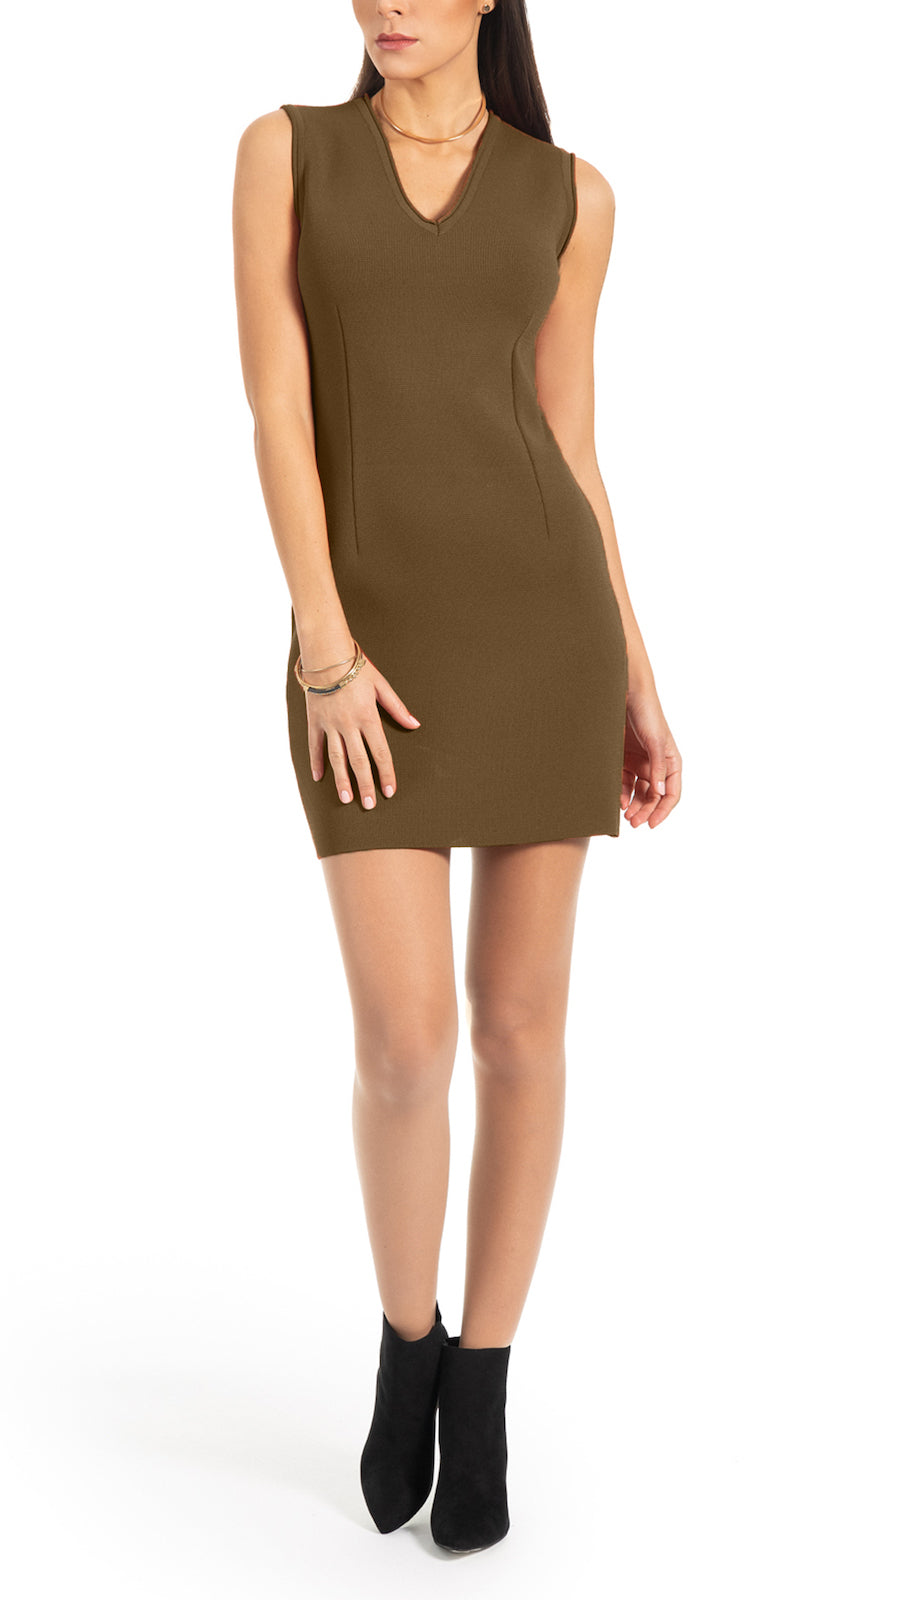 Suri Milano knit dress, Olive